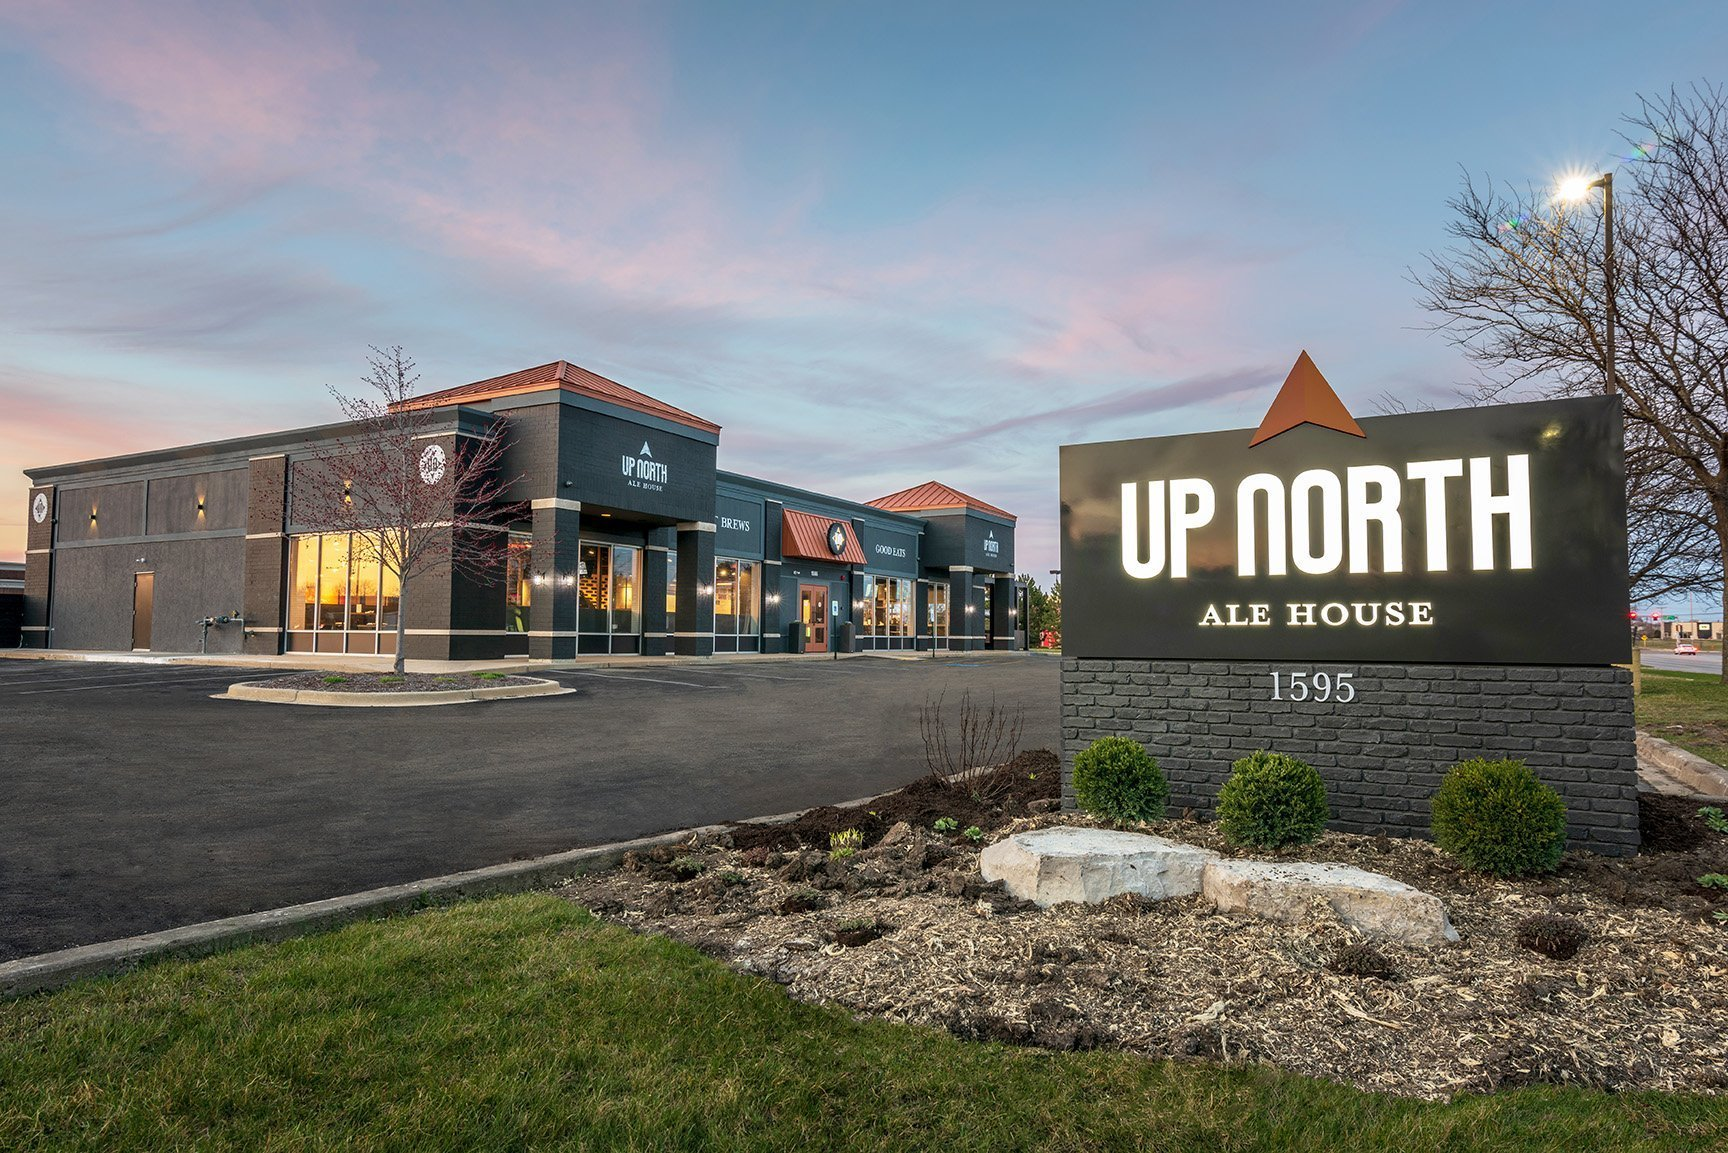 Building Exterior Showing Monument Sign with the Up North logo in front of the building